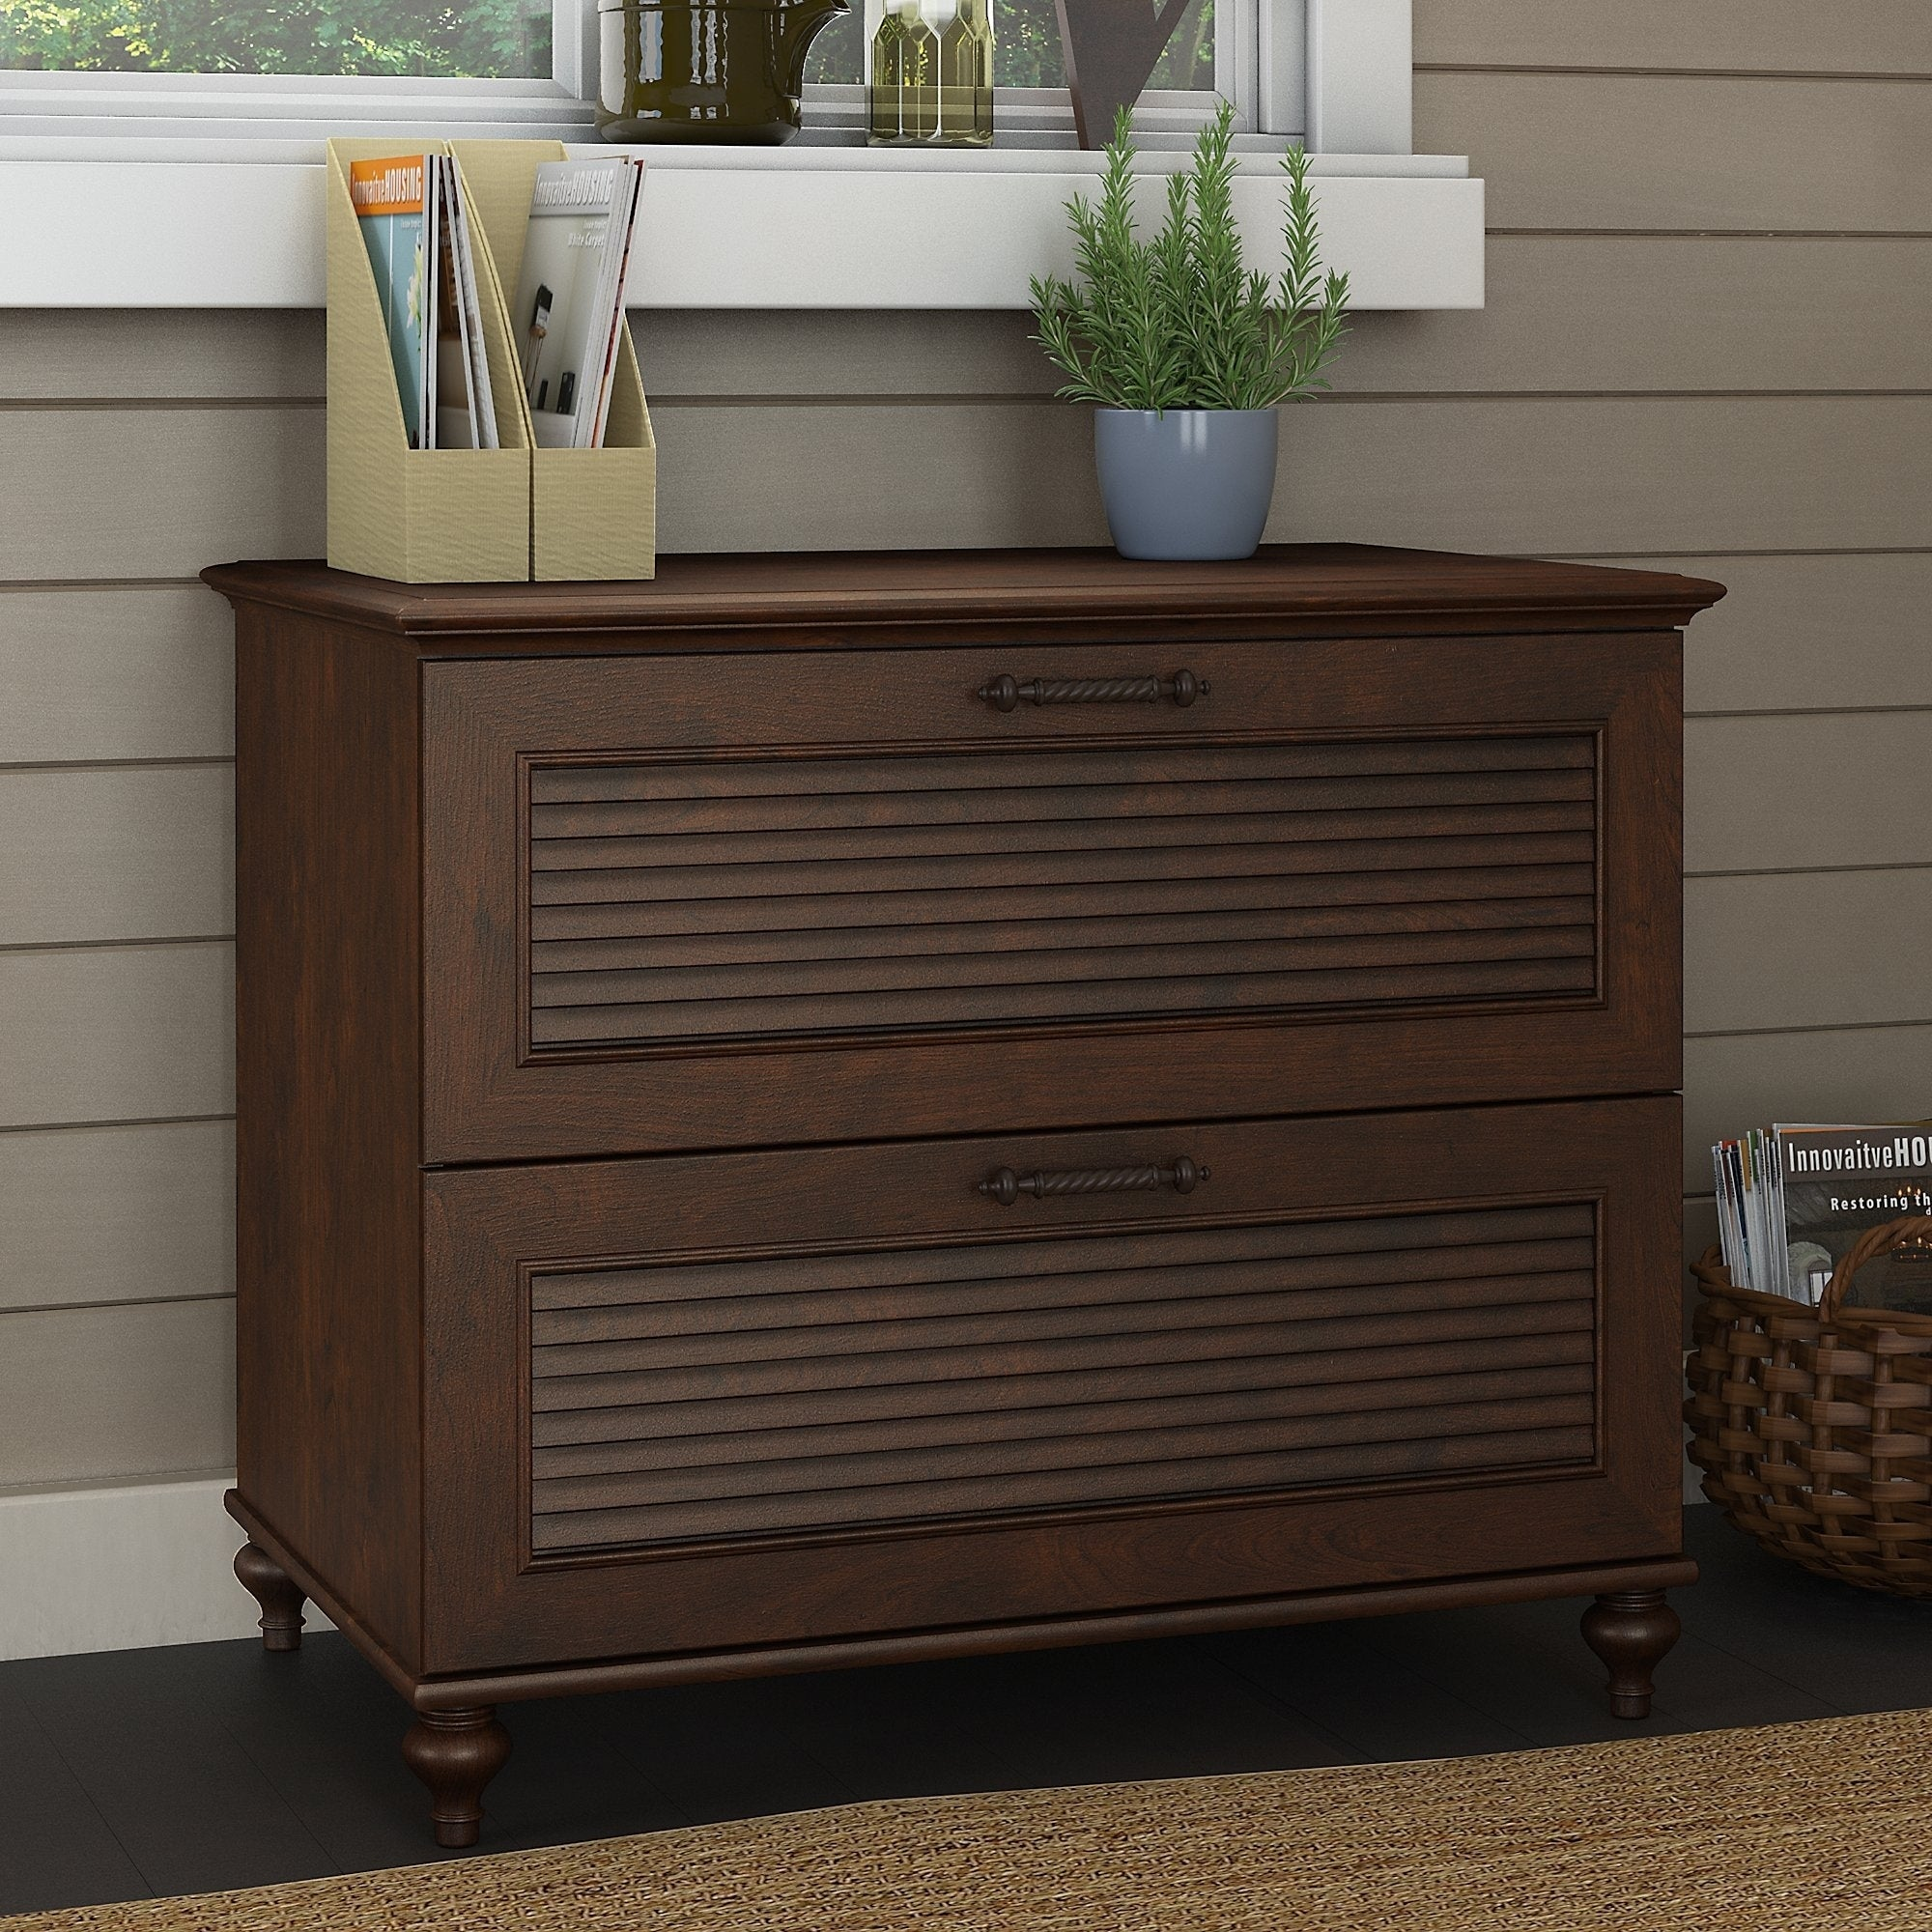 Shop kathy ireland office by bush furniture volcano dusk lateral cabinet free shipping today overstock com 14434997